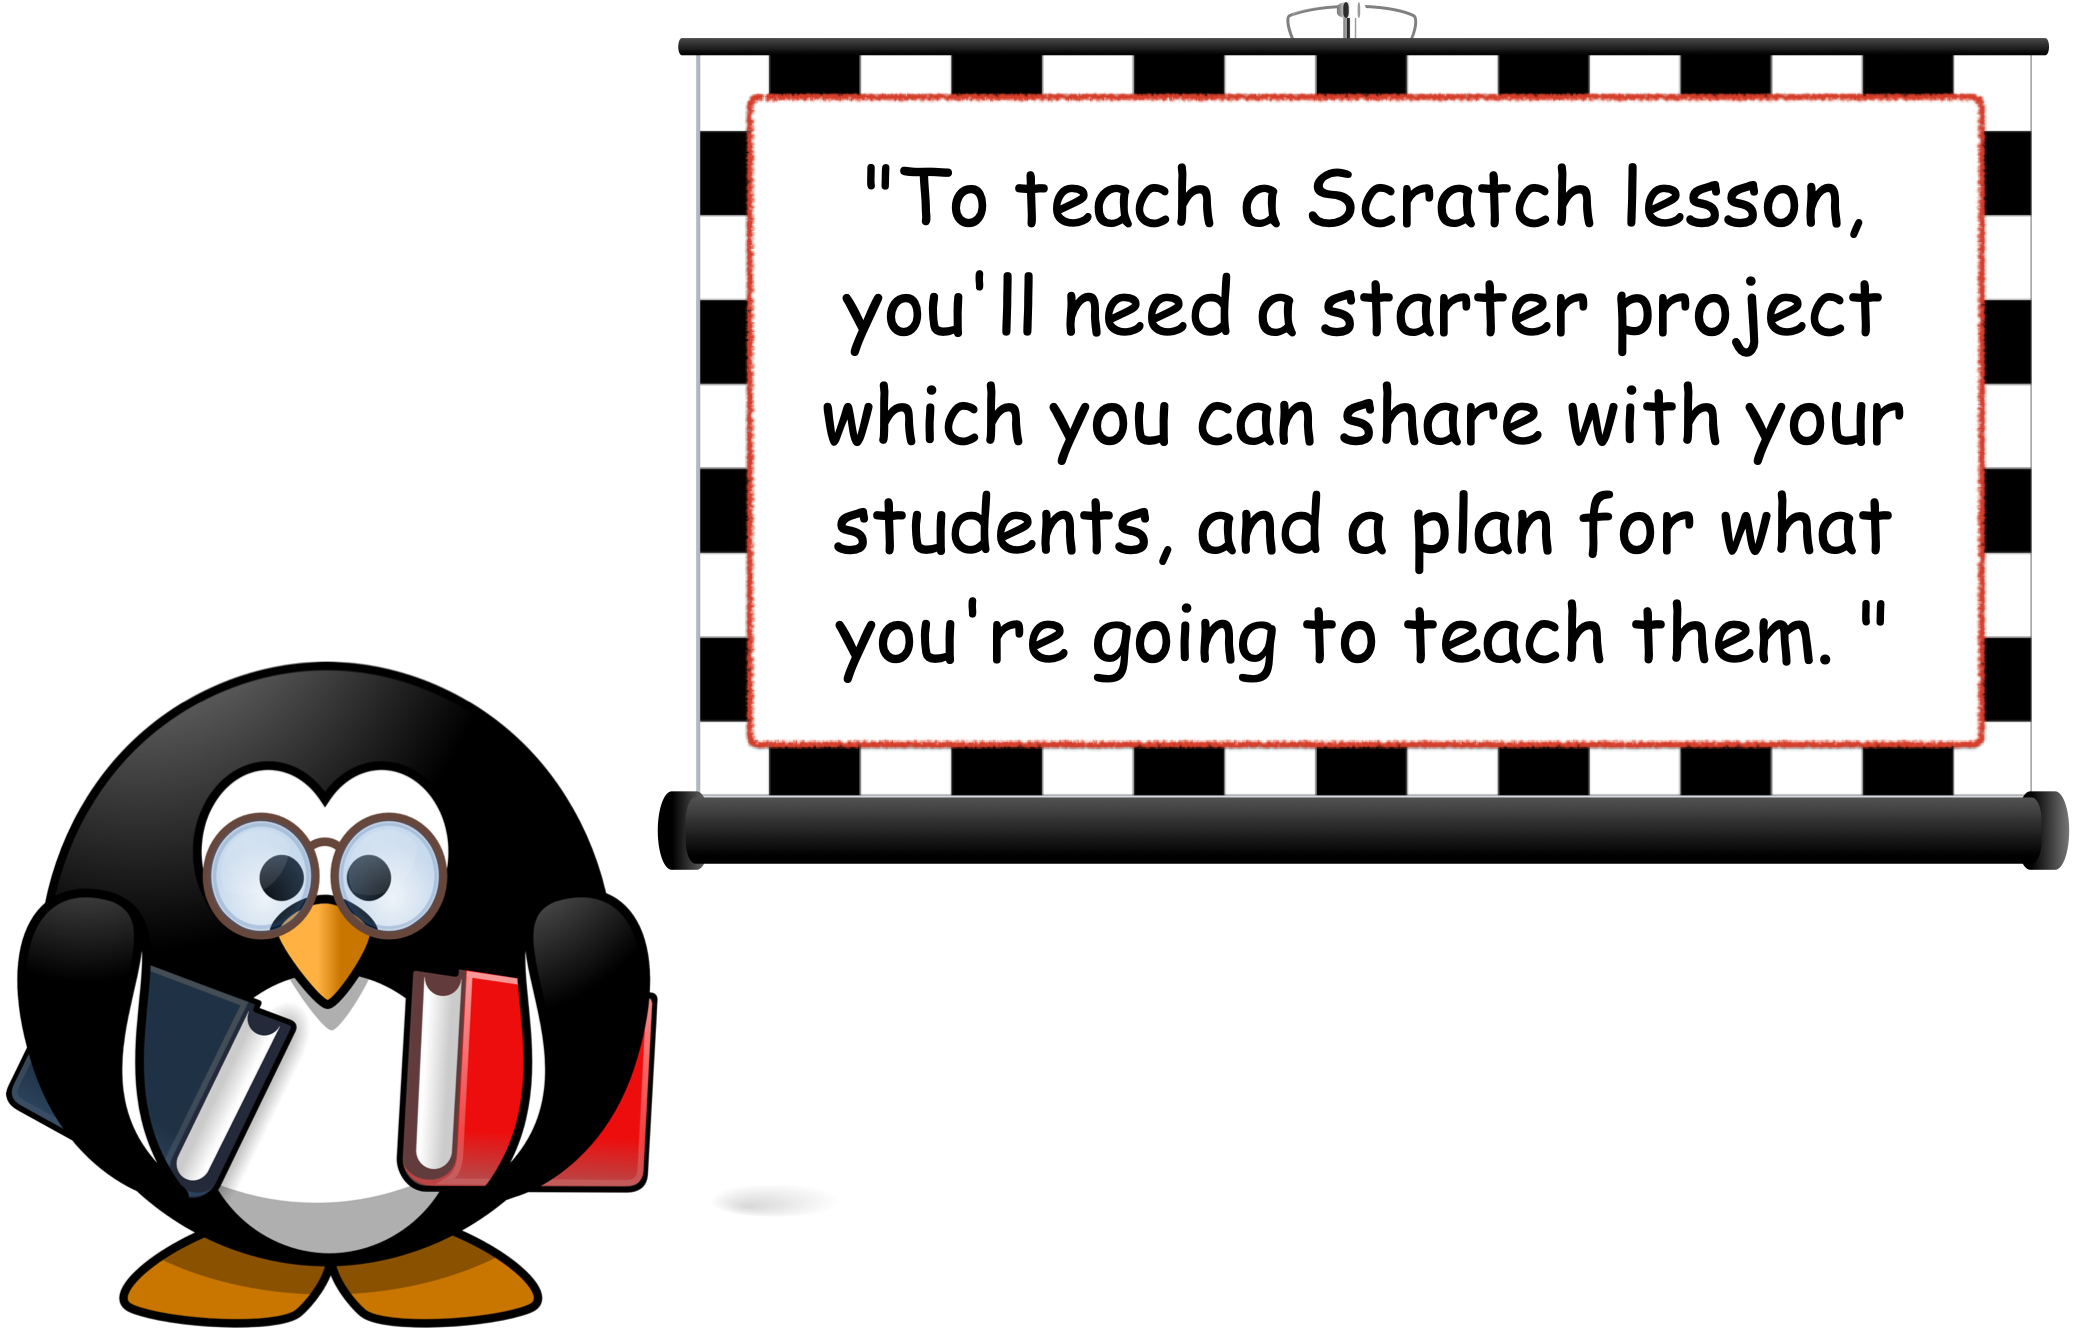 How to Get Your Students Started With Scratch